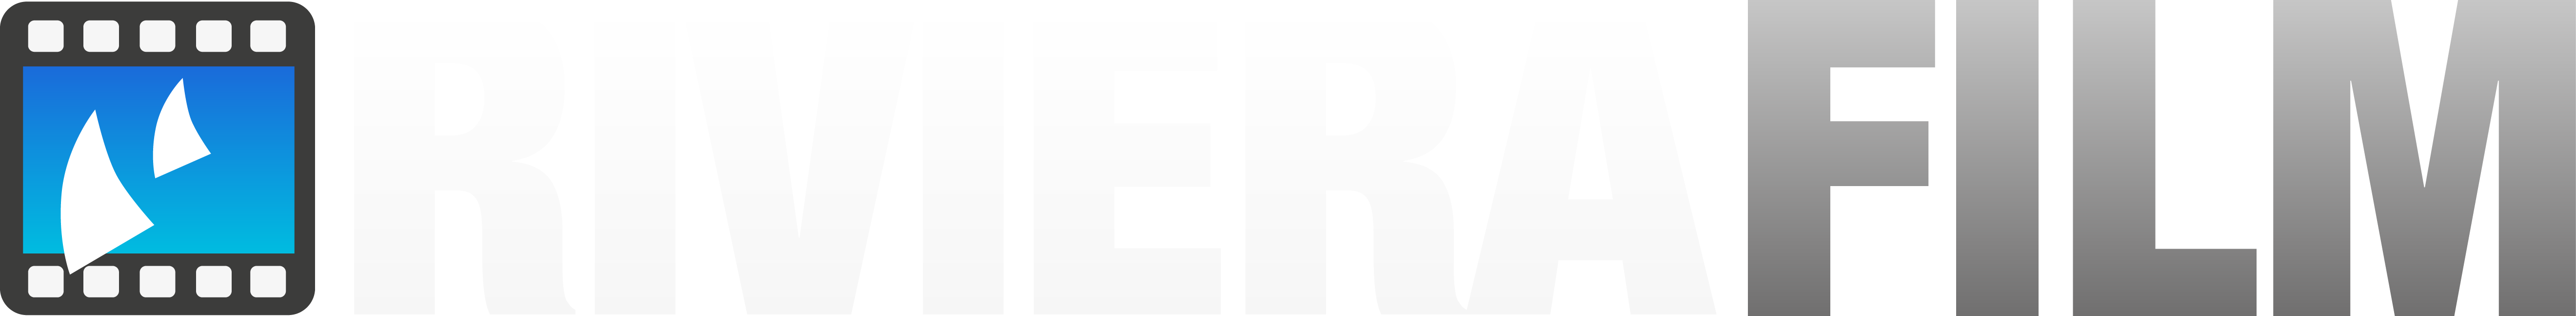 riviera film logo lungo - on black-alpha.png